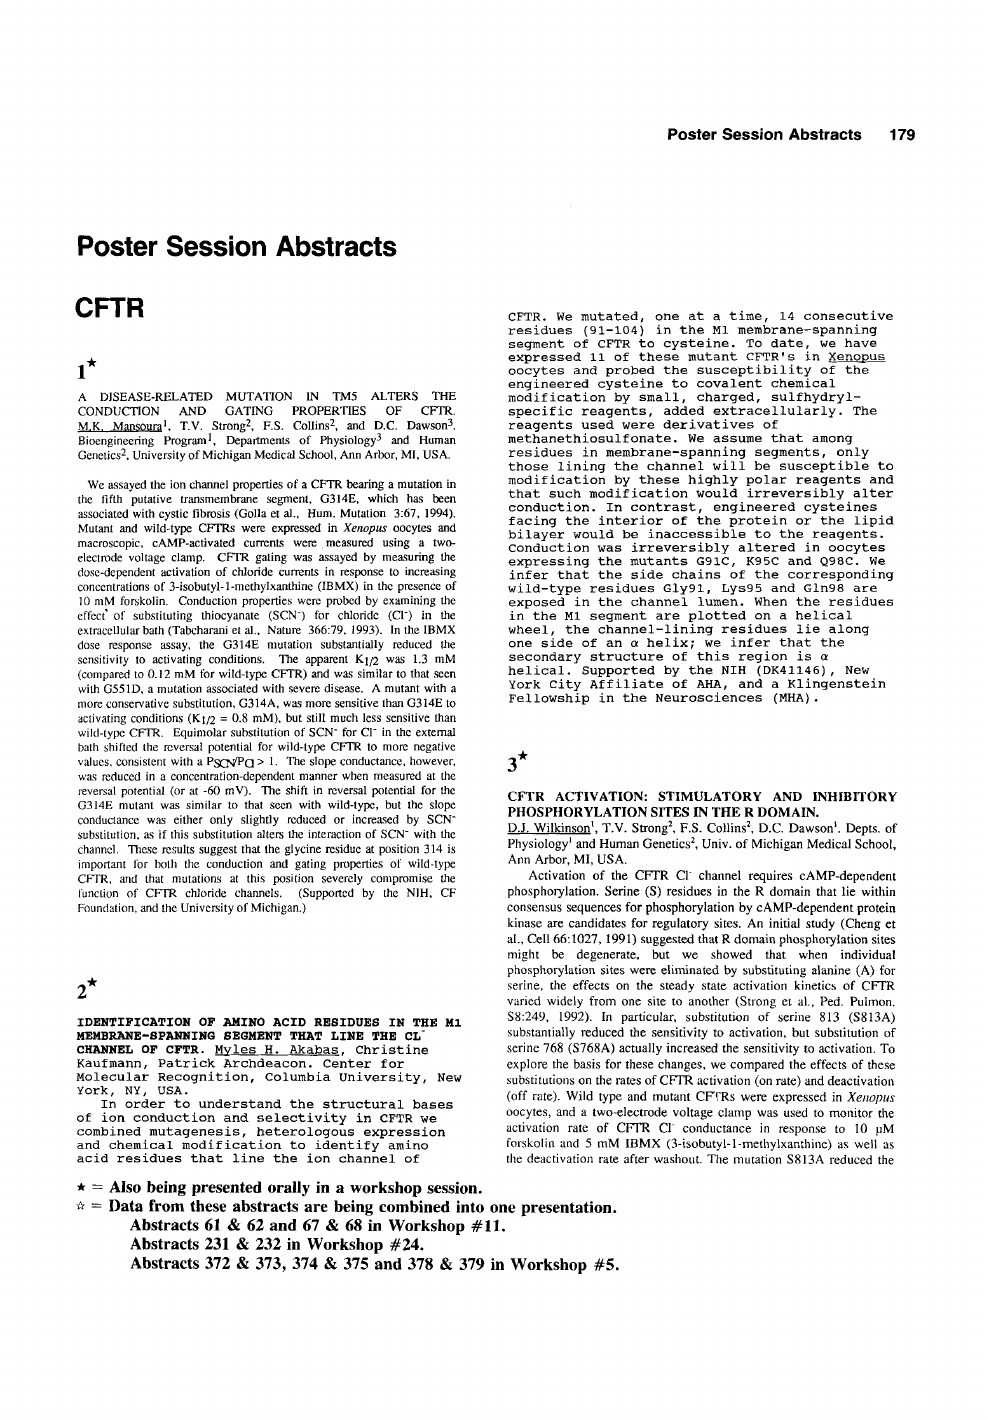 Poster session abstracts – topic of research paper in Biological ...